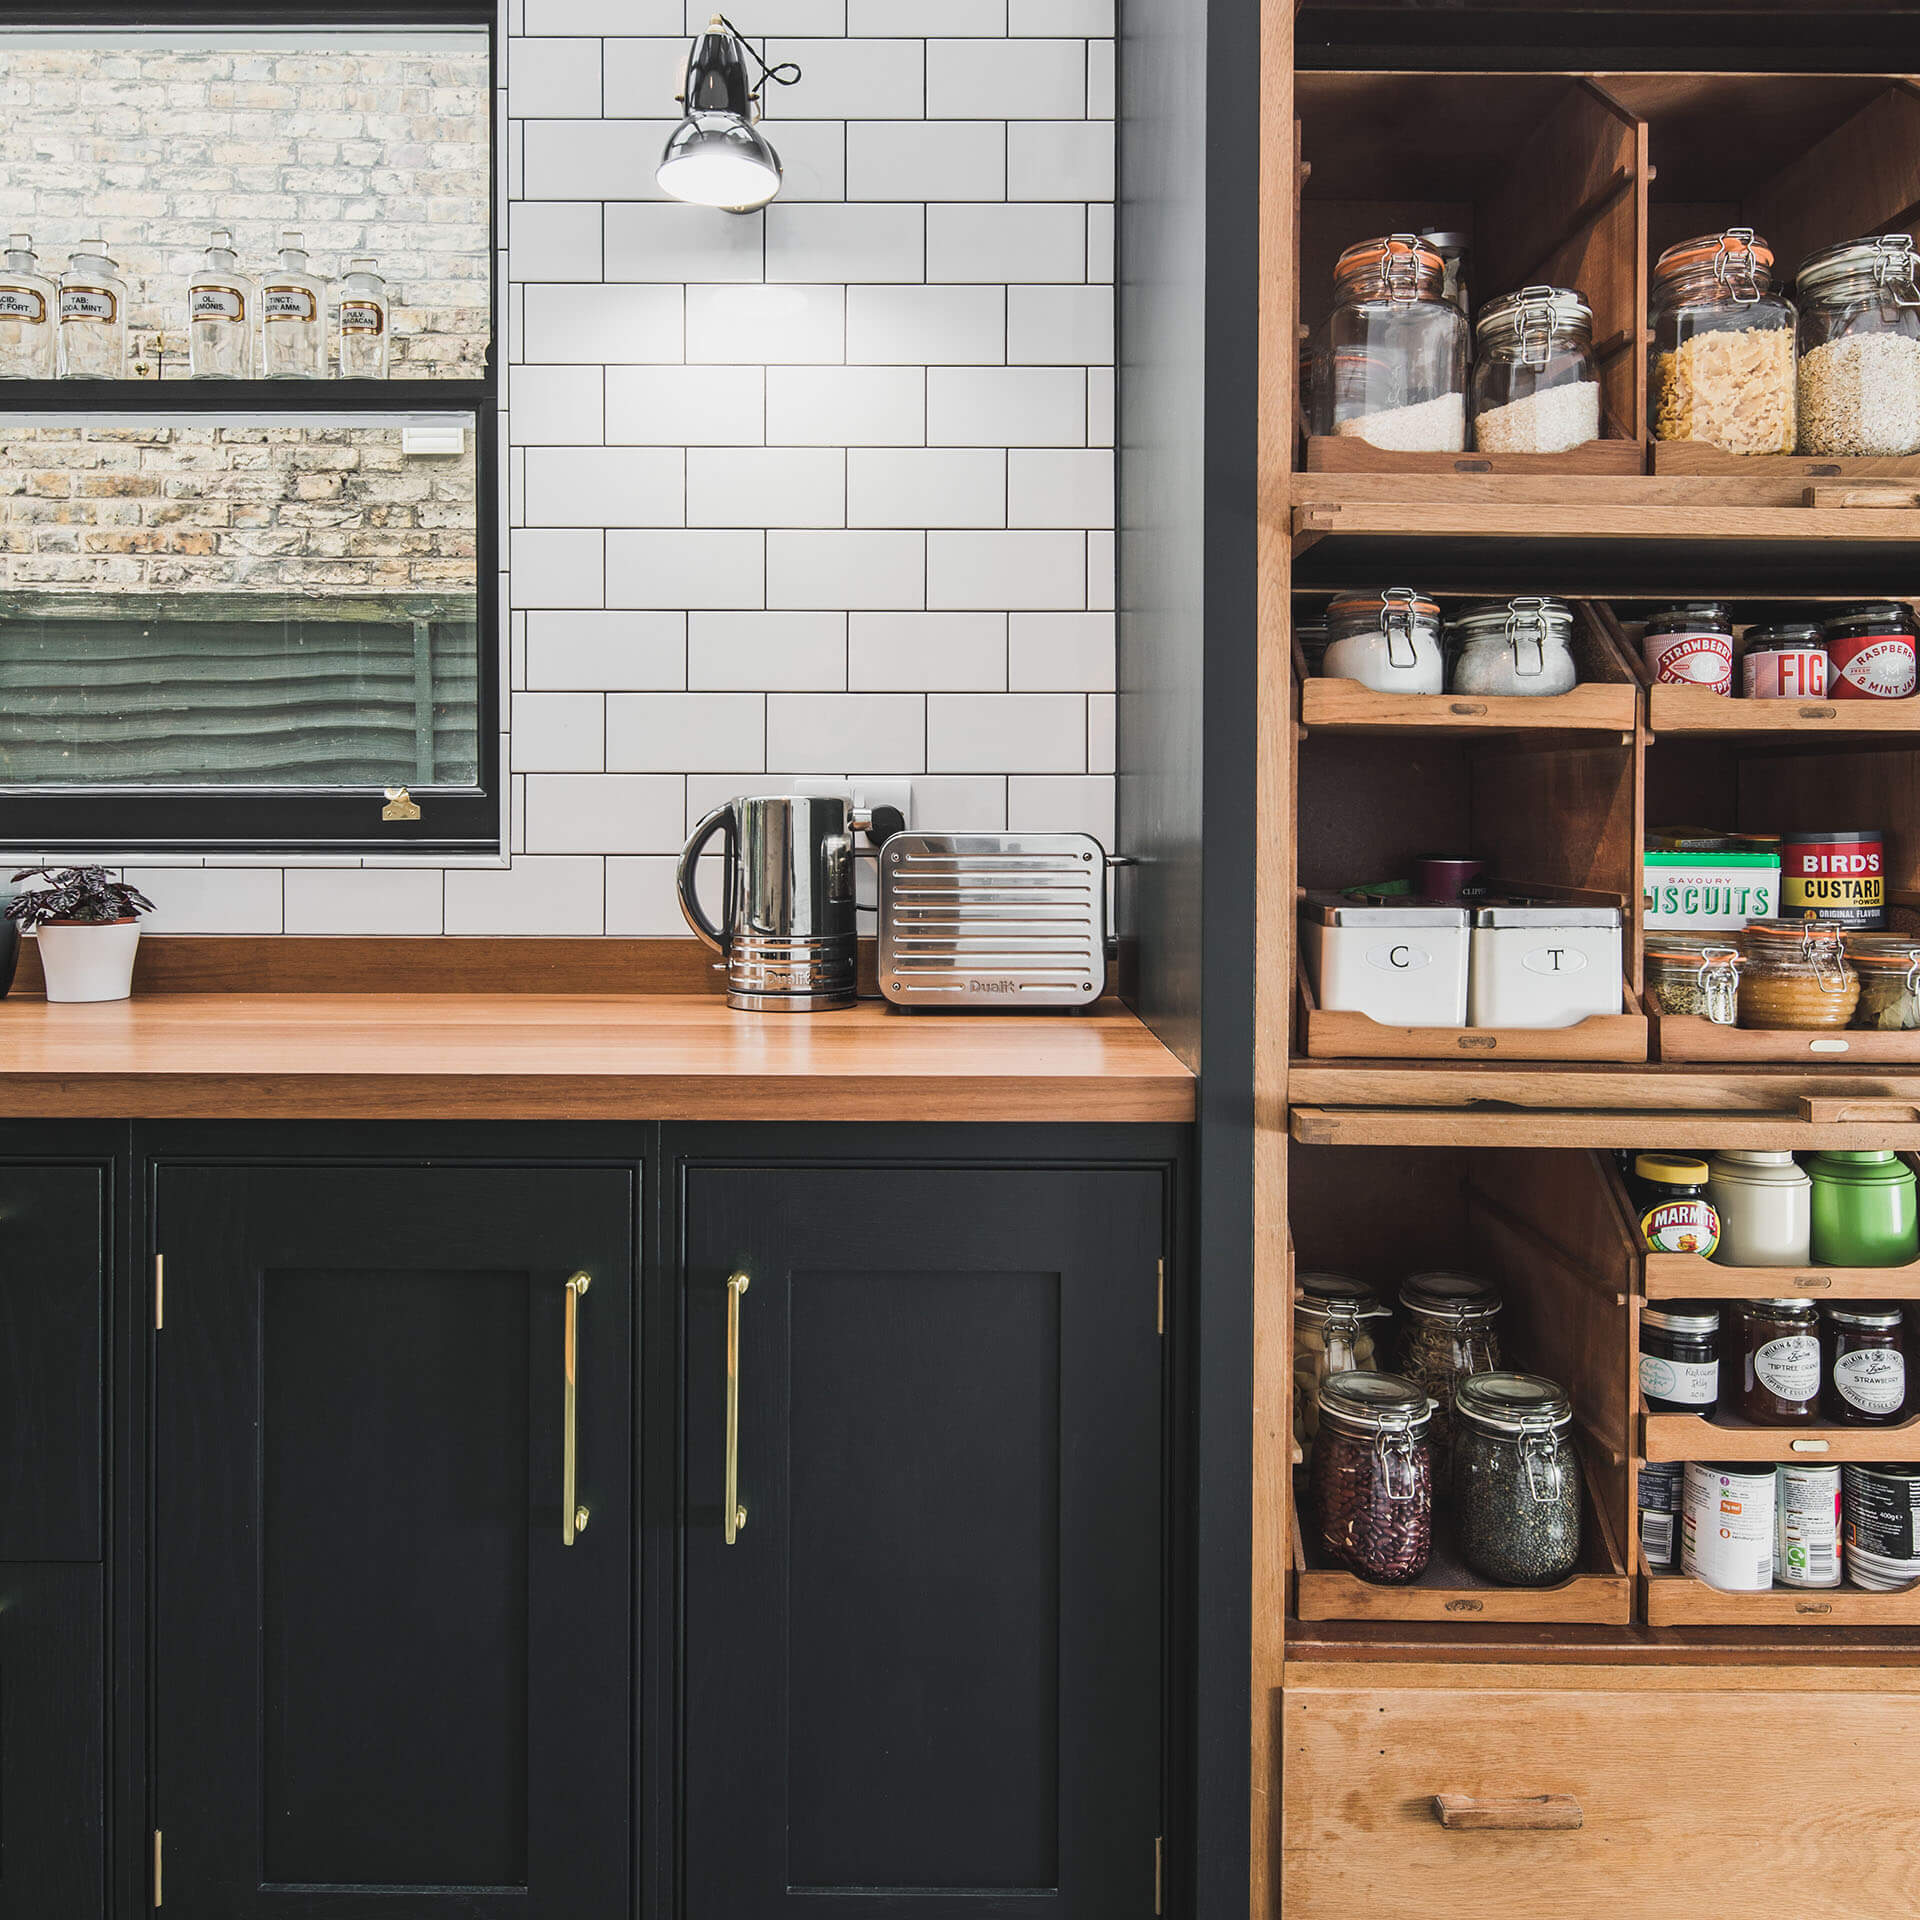 Green Kitchen: 8 Kitchen Design Trends For 2019